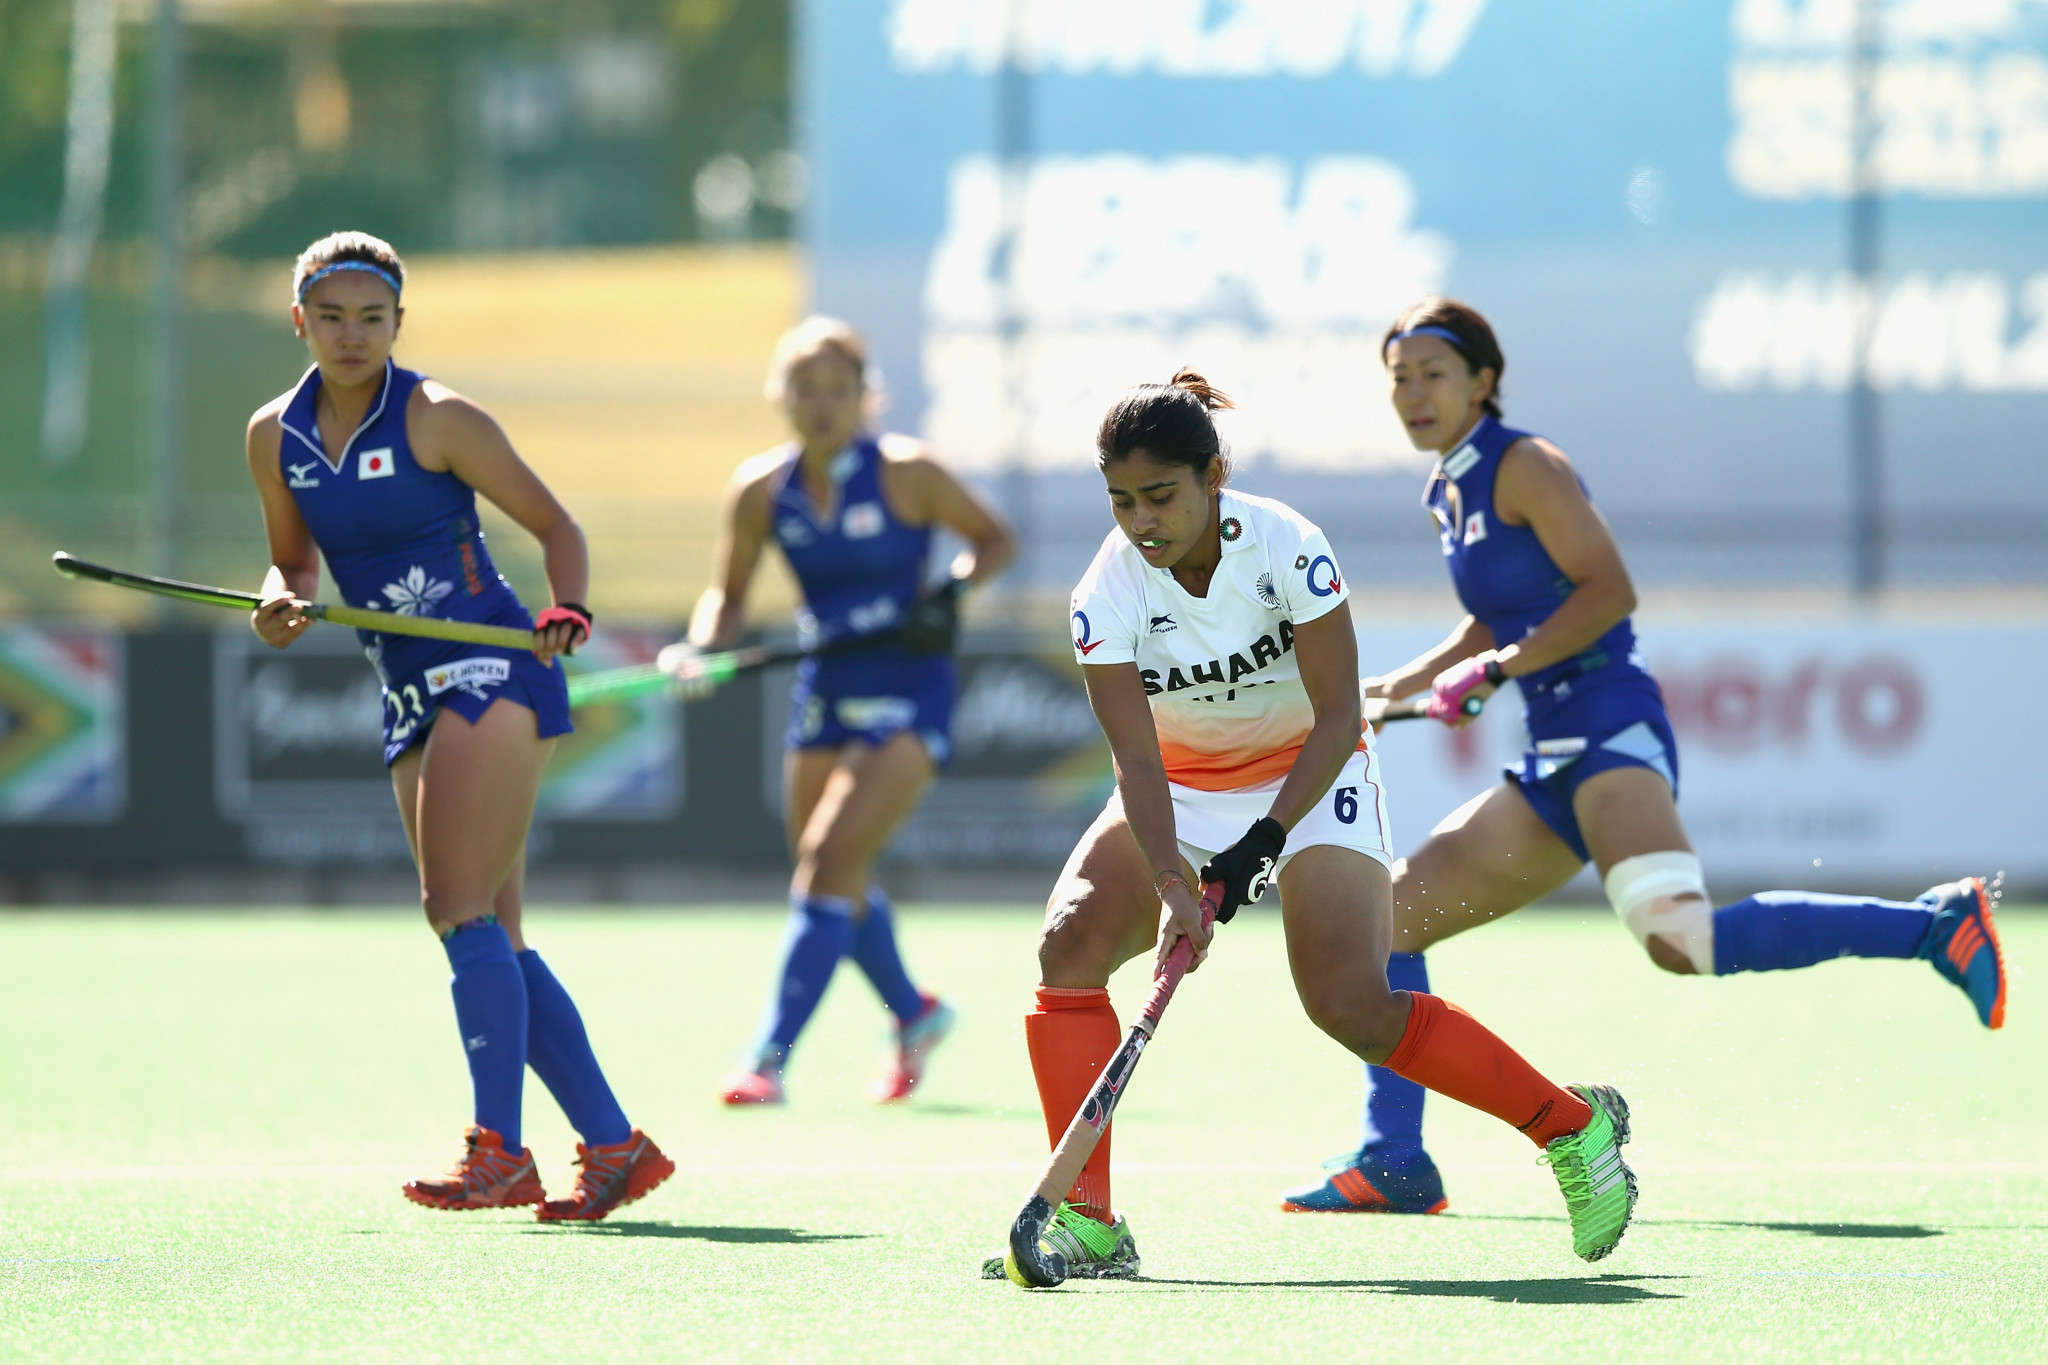 India name women's hockey team for Gold Coast 2018 Commonwealth Games